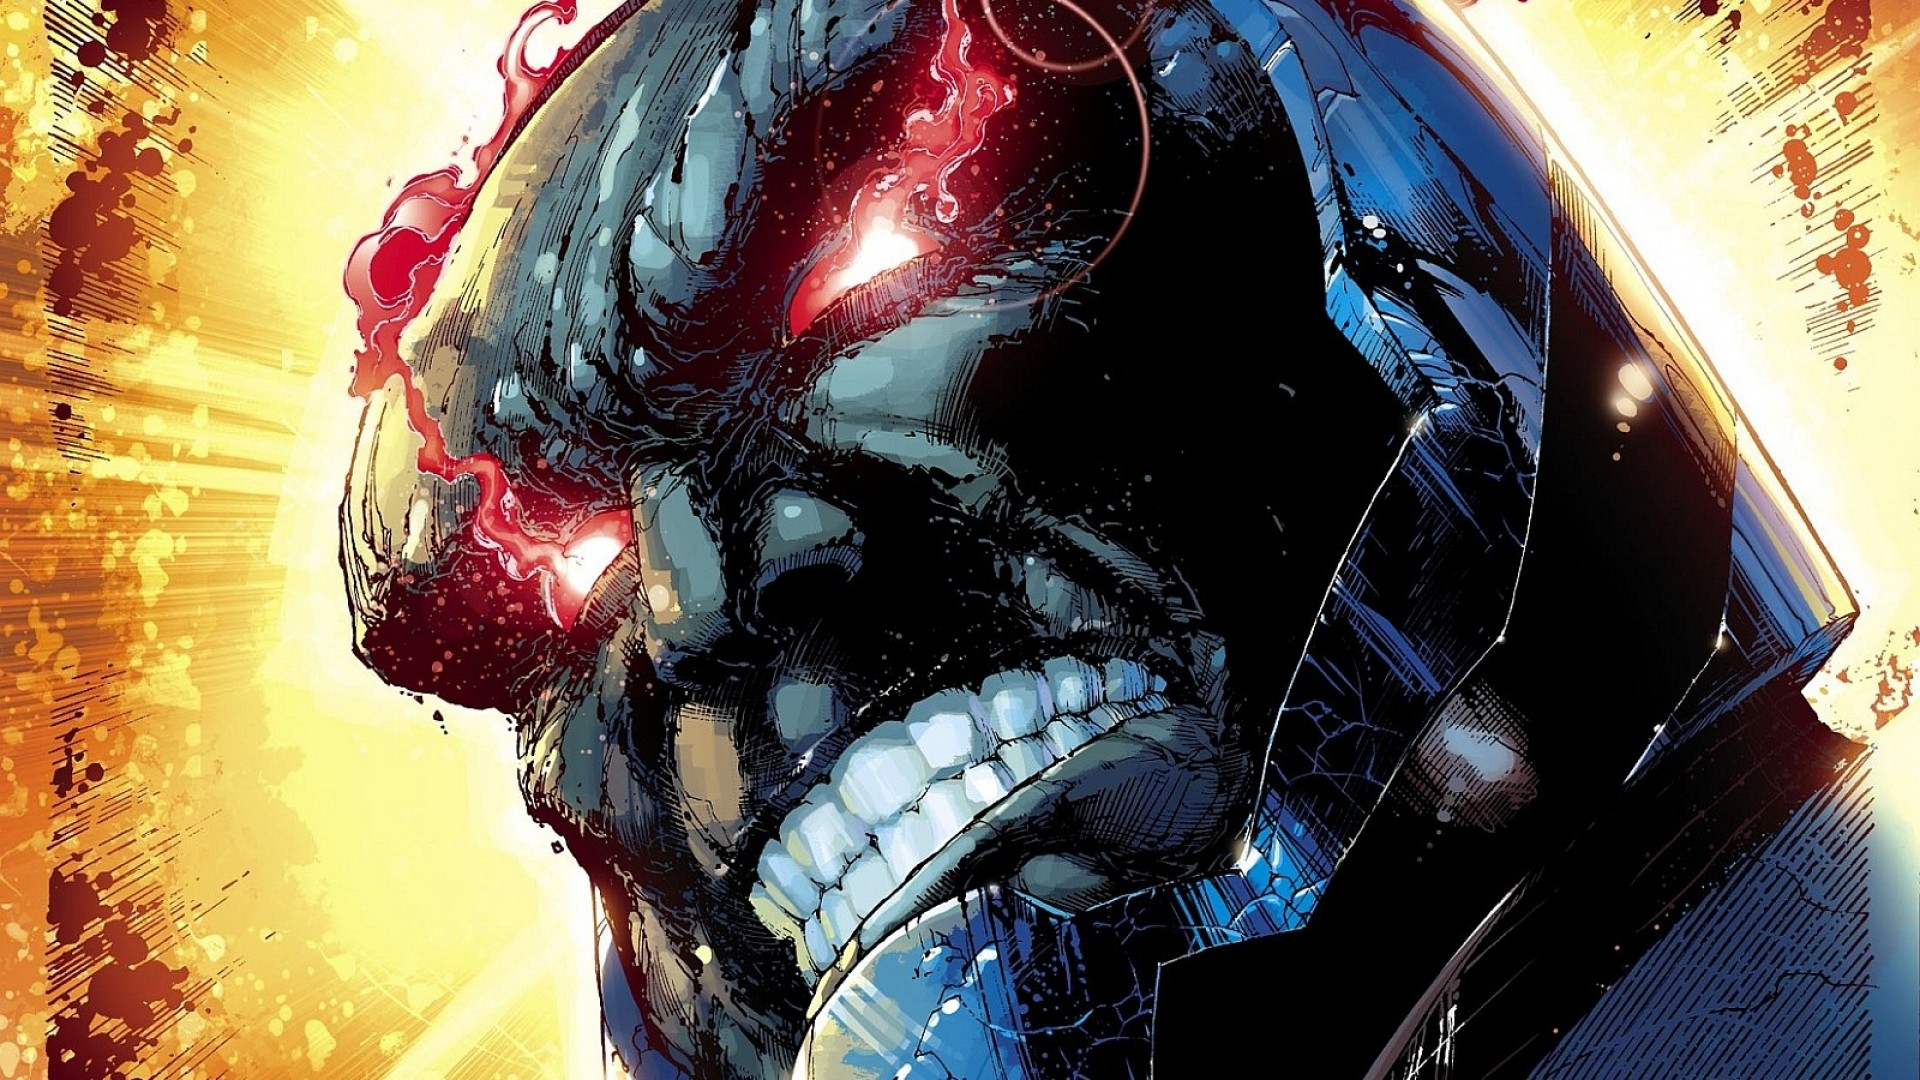 Darkseid Wallpaper 1920x1080